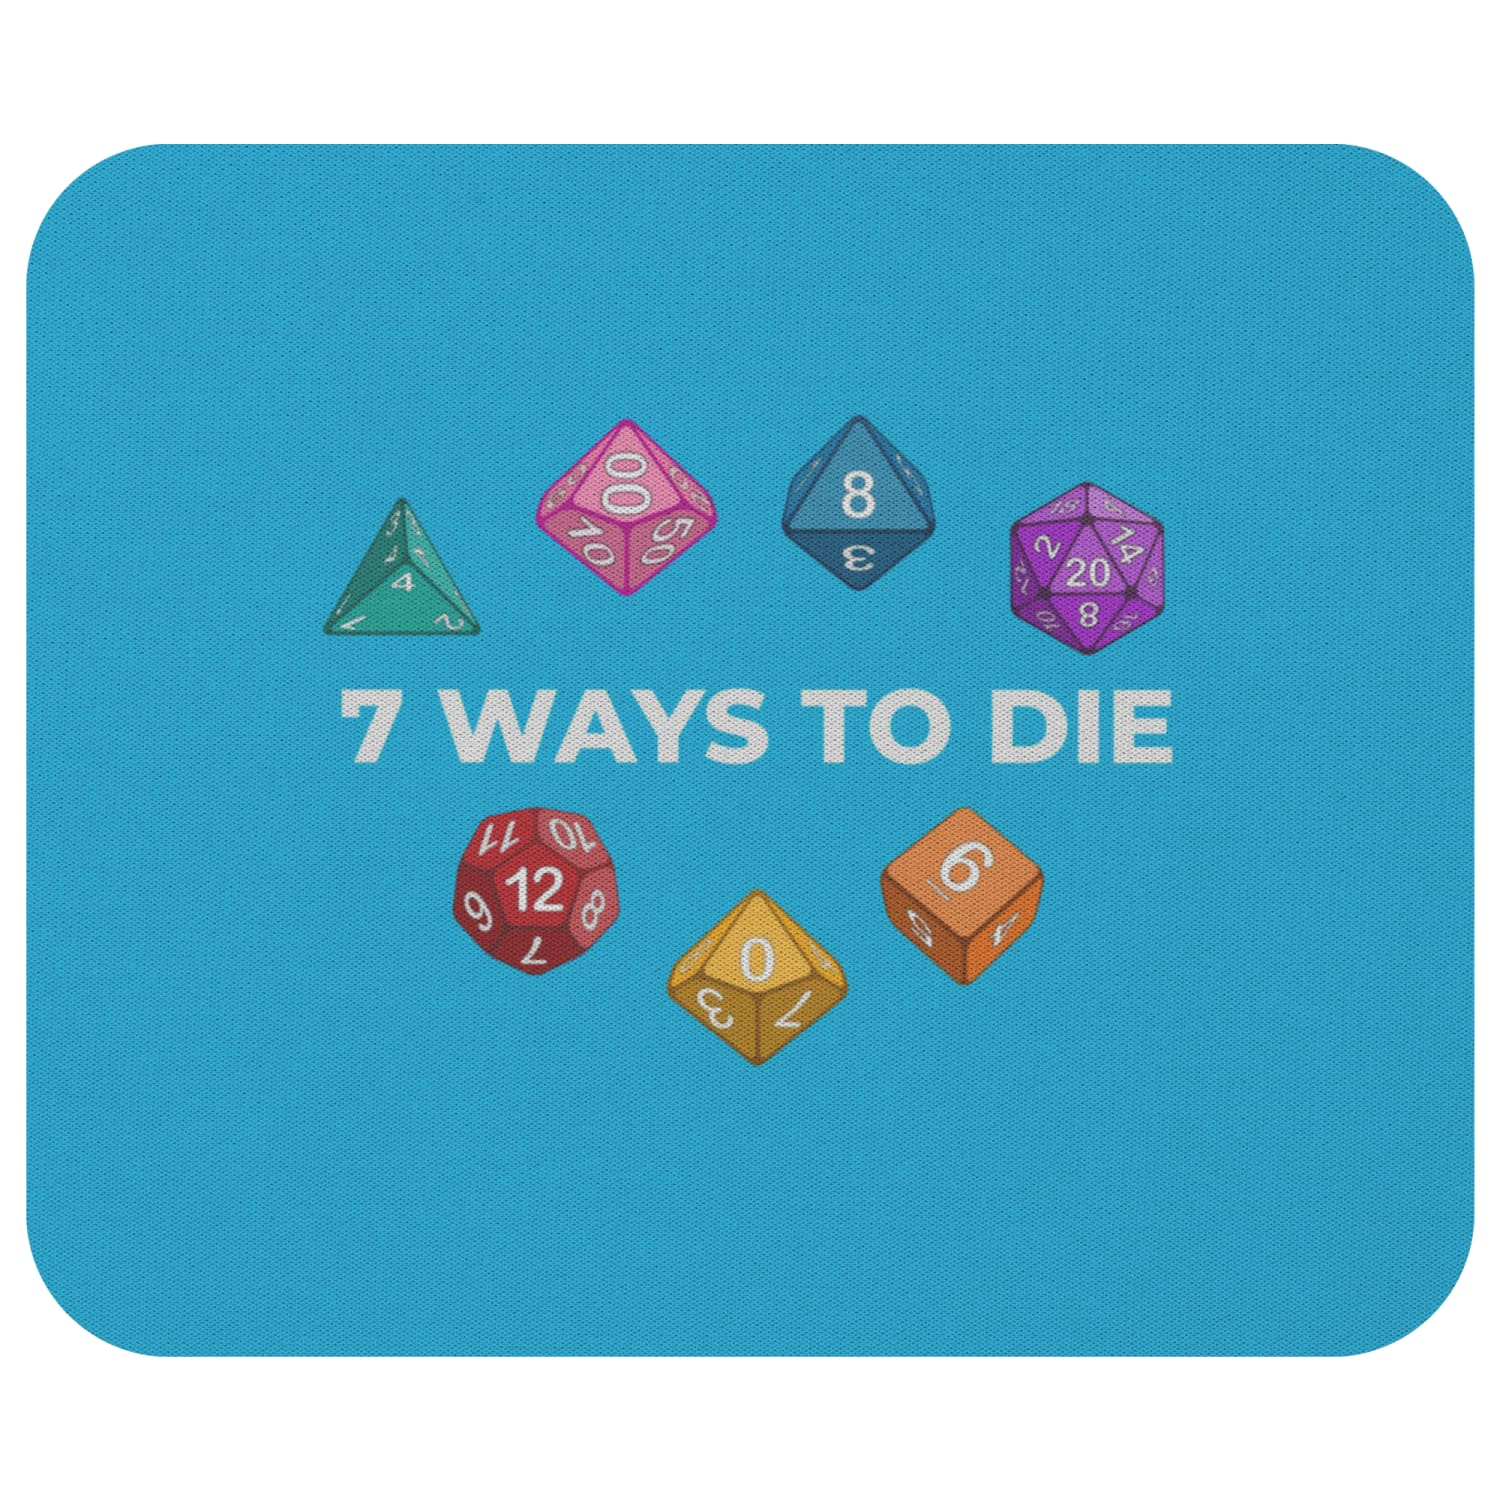 7 Ways To Die Mousepad - 7WBlue - Mousepads